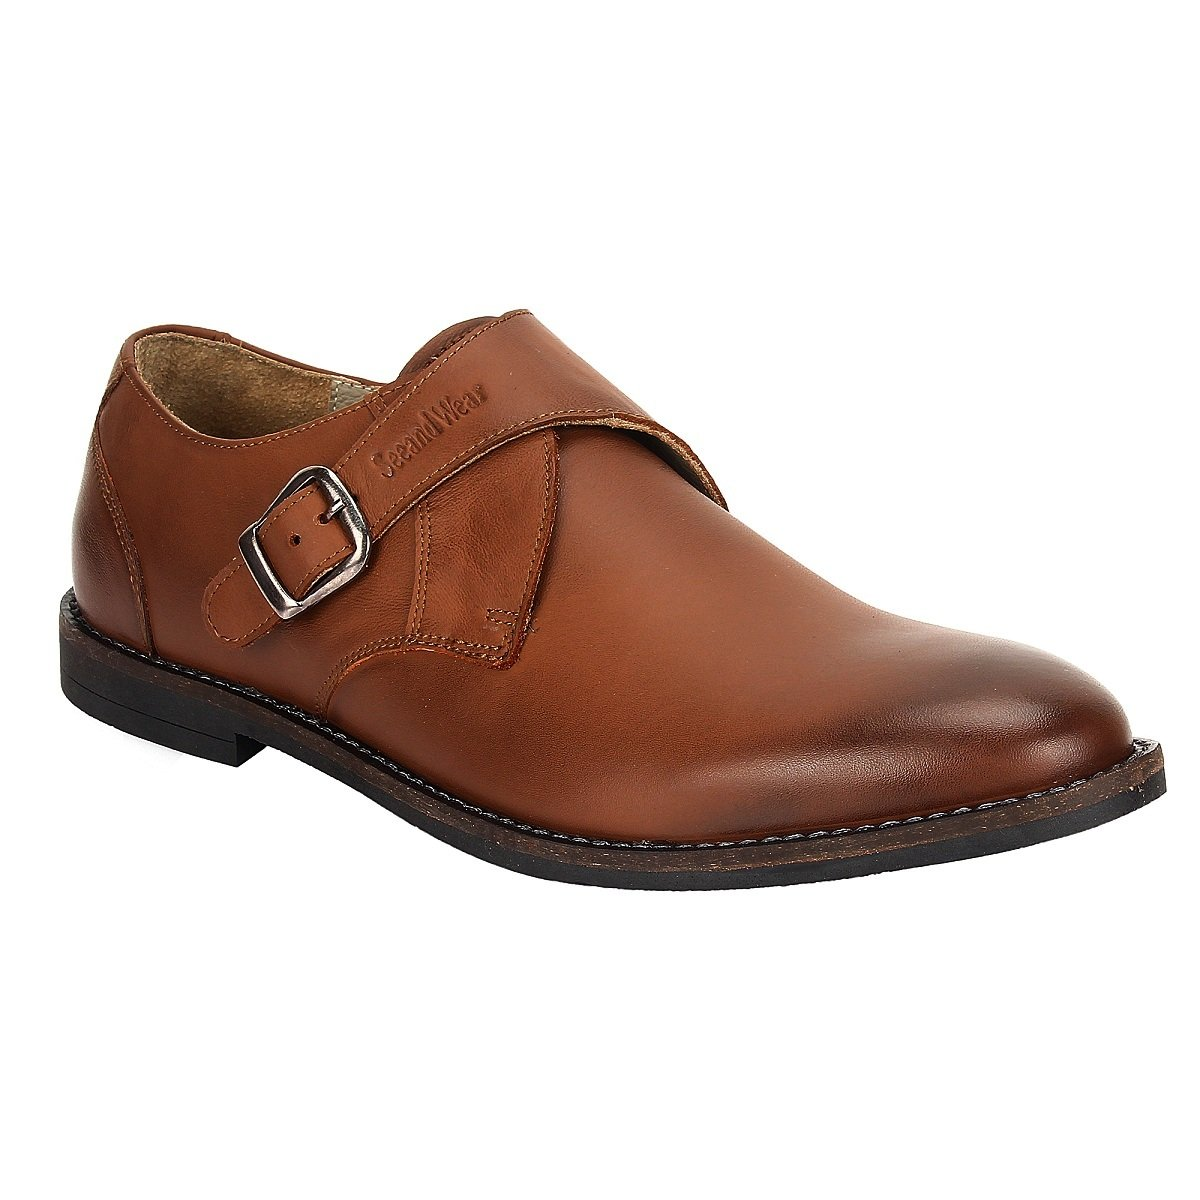 e468d8a2c SeeandWear Monk Shoes for Men. Single Strap Tan Brown Colour Genuine  Leather Formal Shoe.  Buy Online at Low Prices in India - Amazon.in